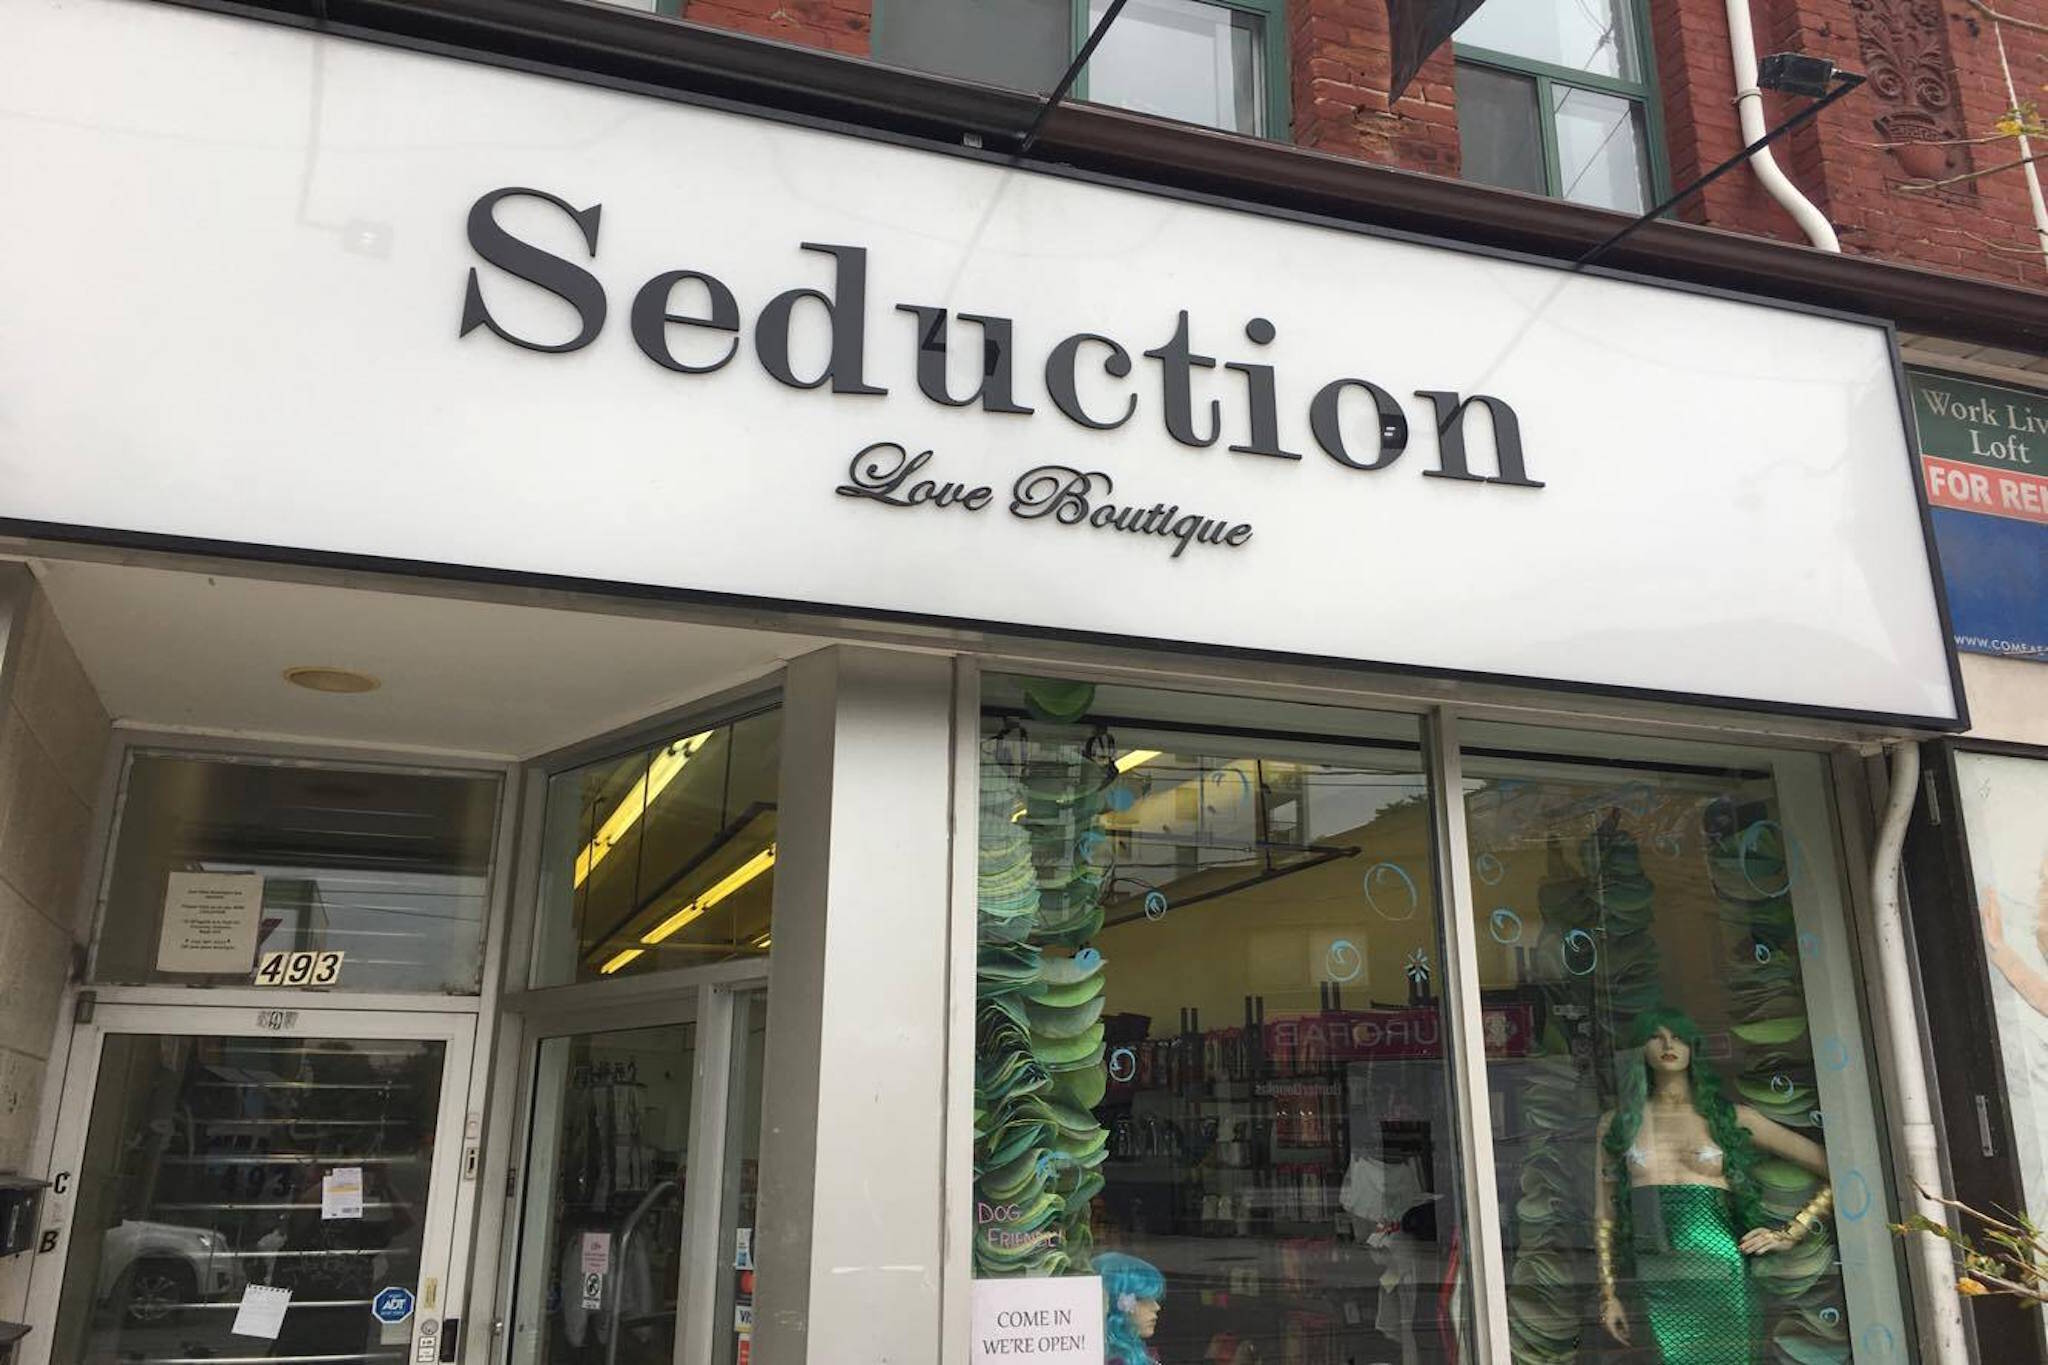 Seduction Toronto